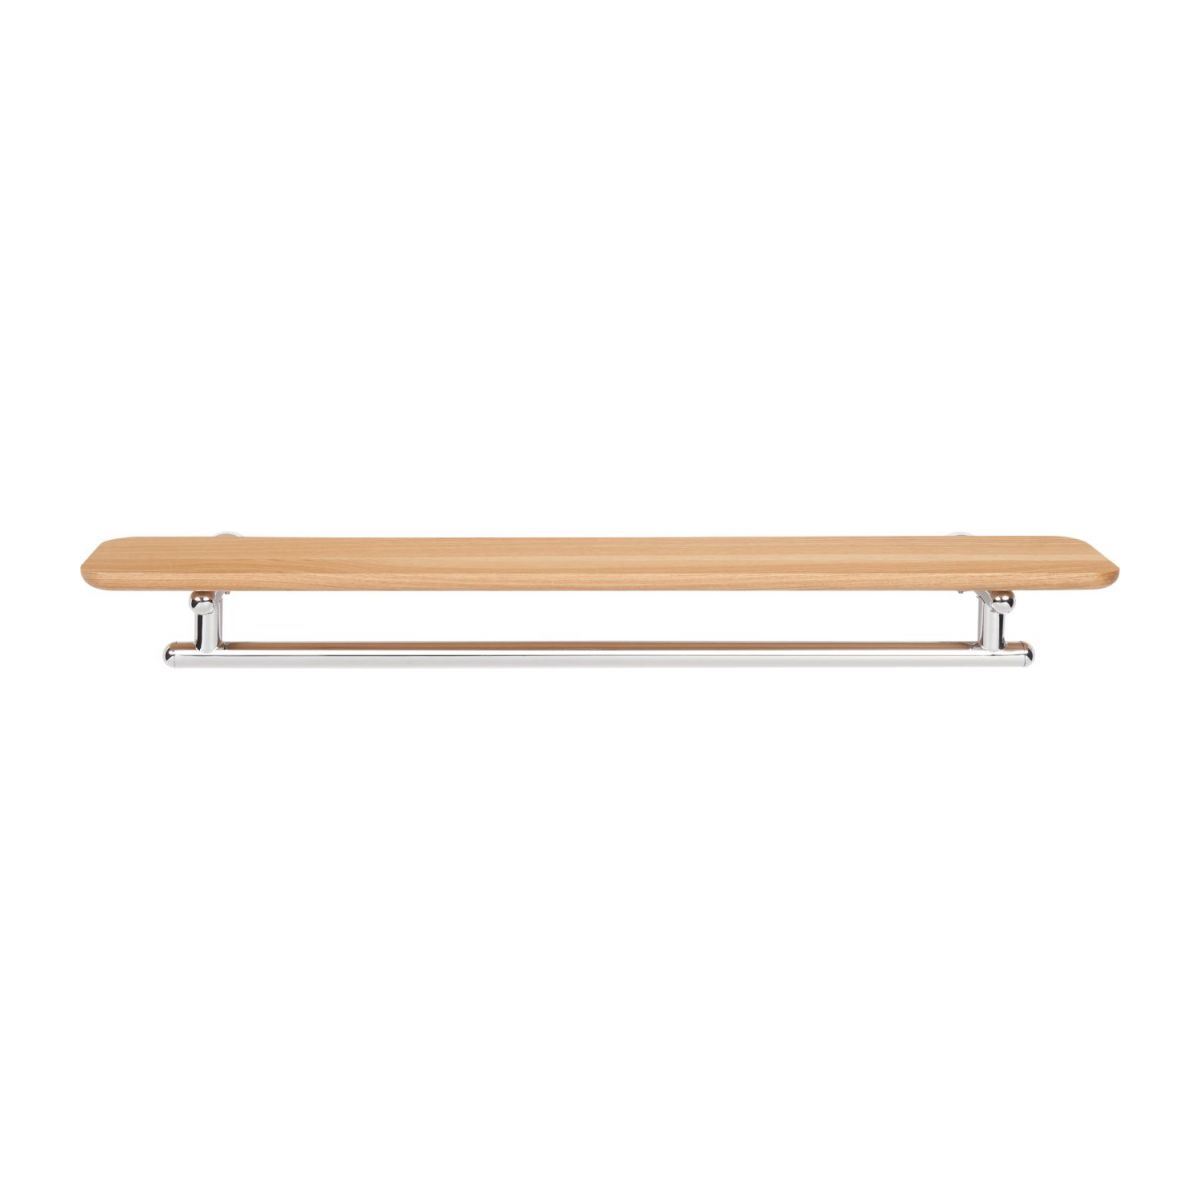 Towel holder shelf 70cm in beechwood and stainless steel n°2